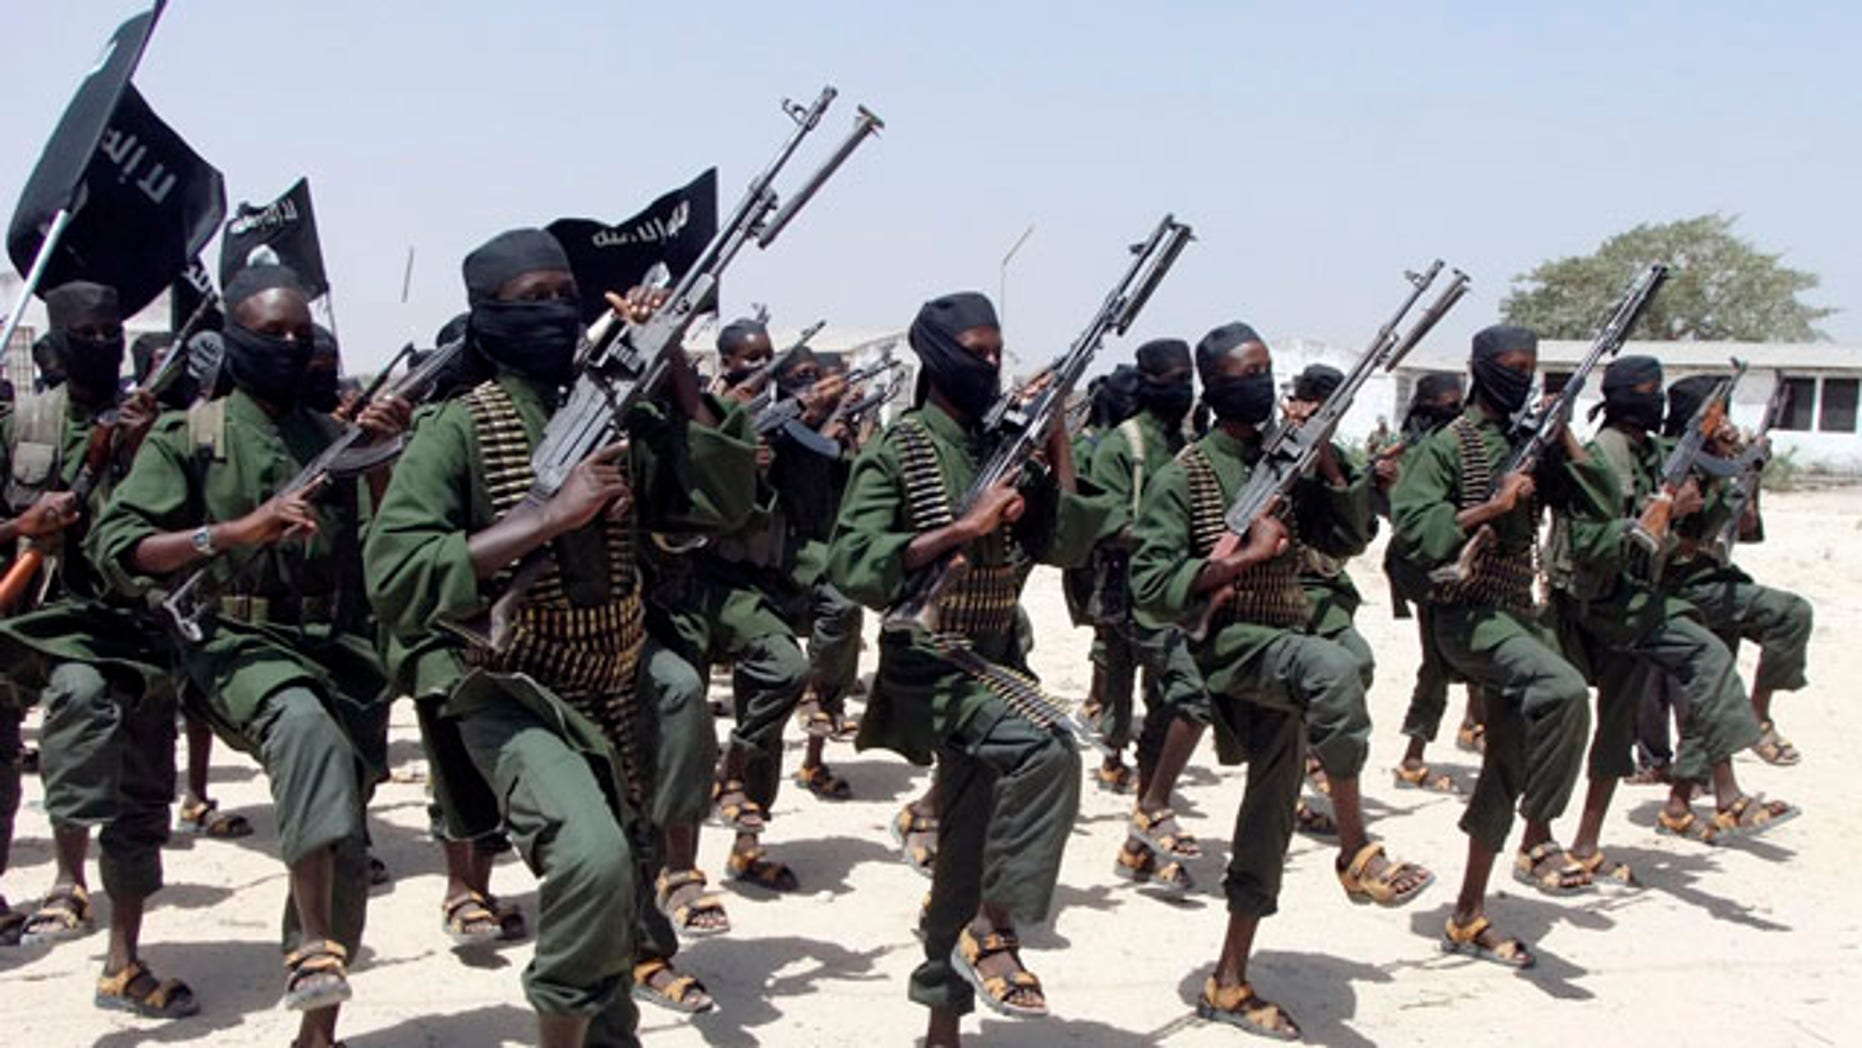 FILE - In this Thursday, Feb. 17, 2011 file photo, hundreds of newly trained al-Shabab fighters perform military exercises in the Lafofe area south of Mogadishu, in Somalia. (AP Photo/Farah Abdi Warsameh, File)